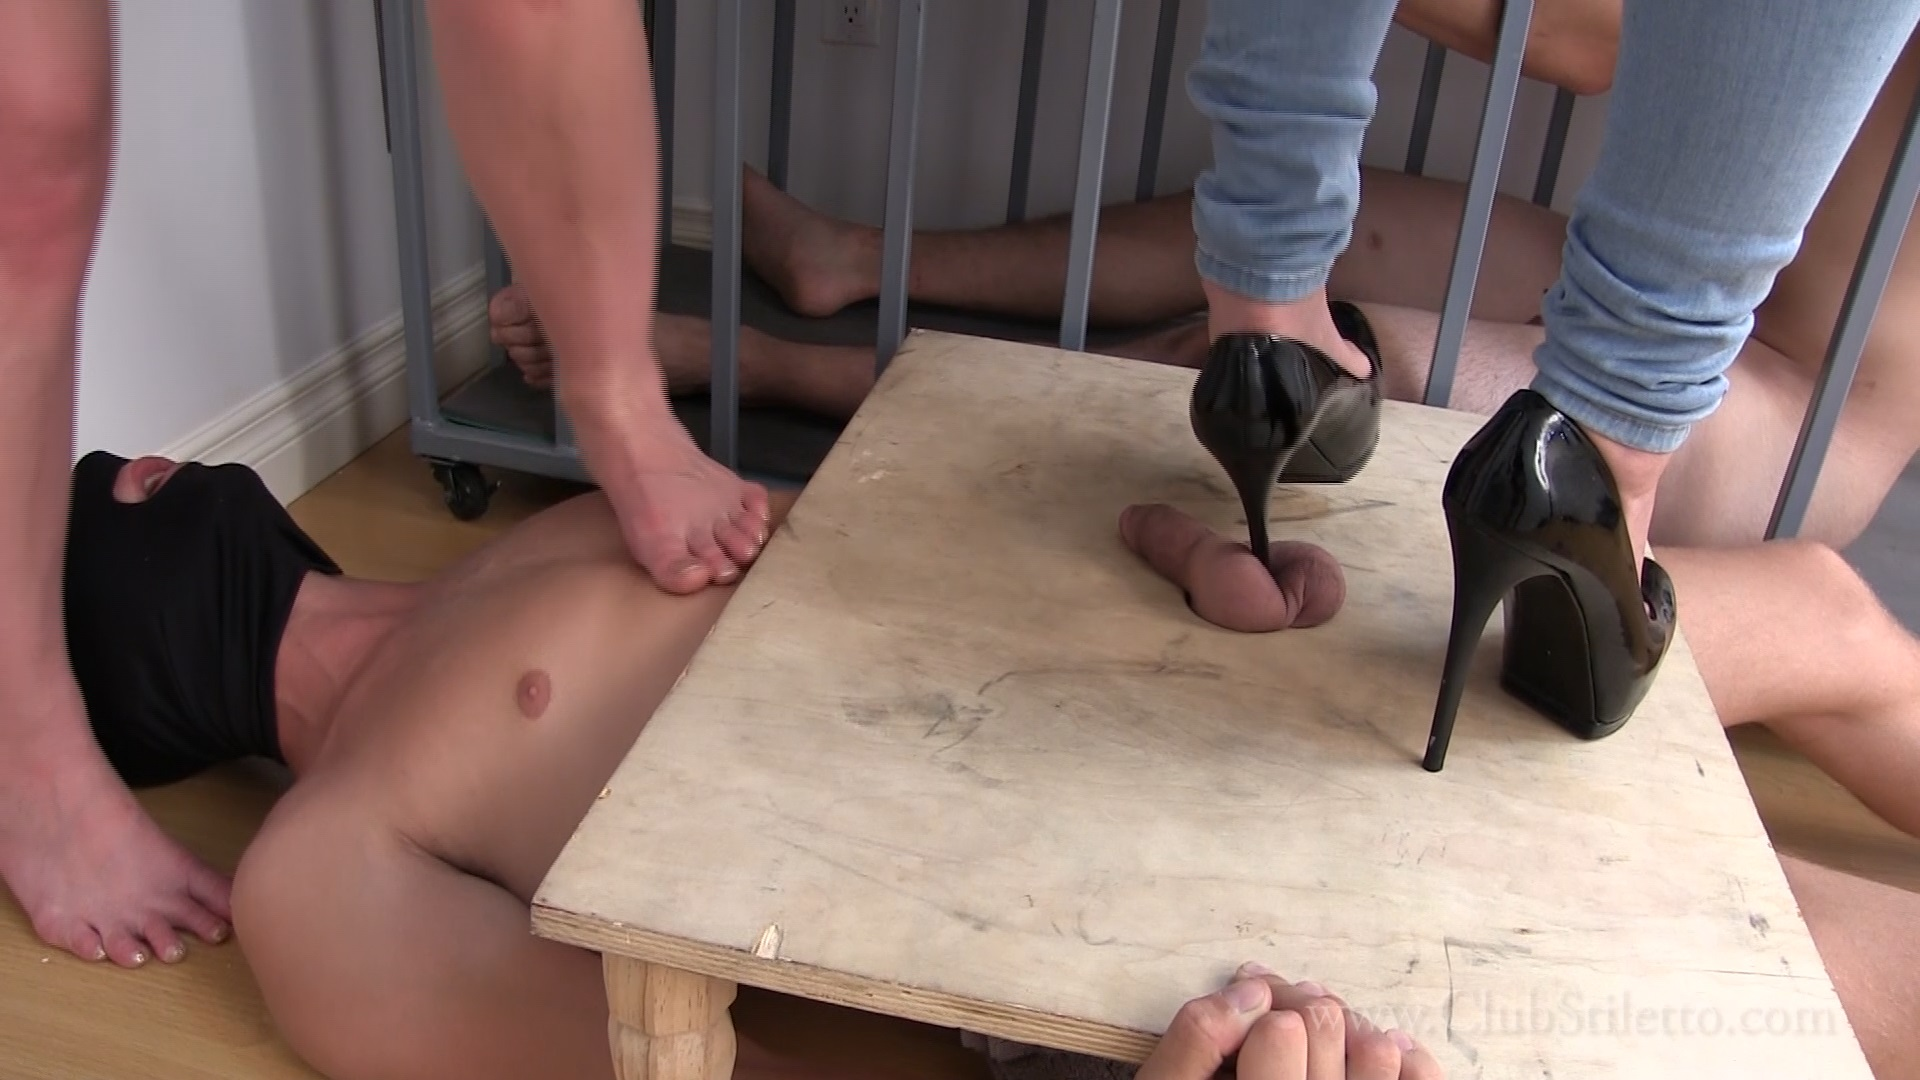 ballbusting and cock